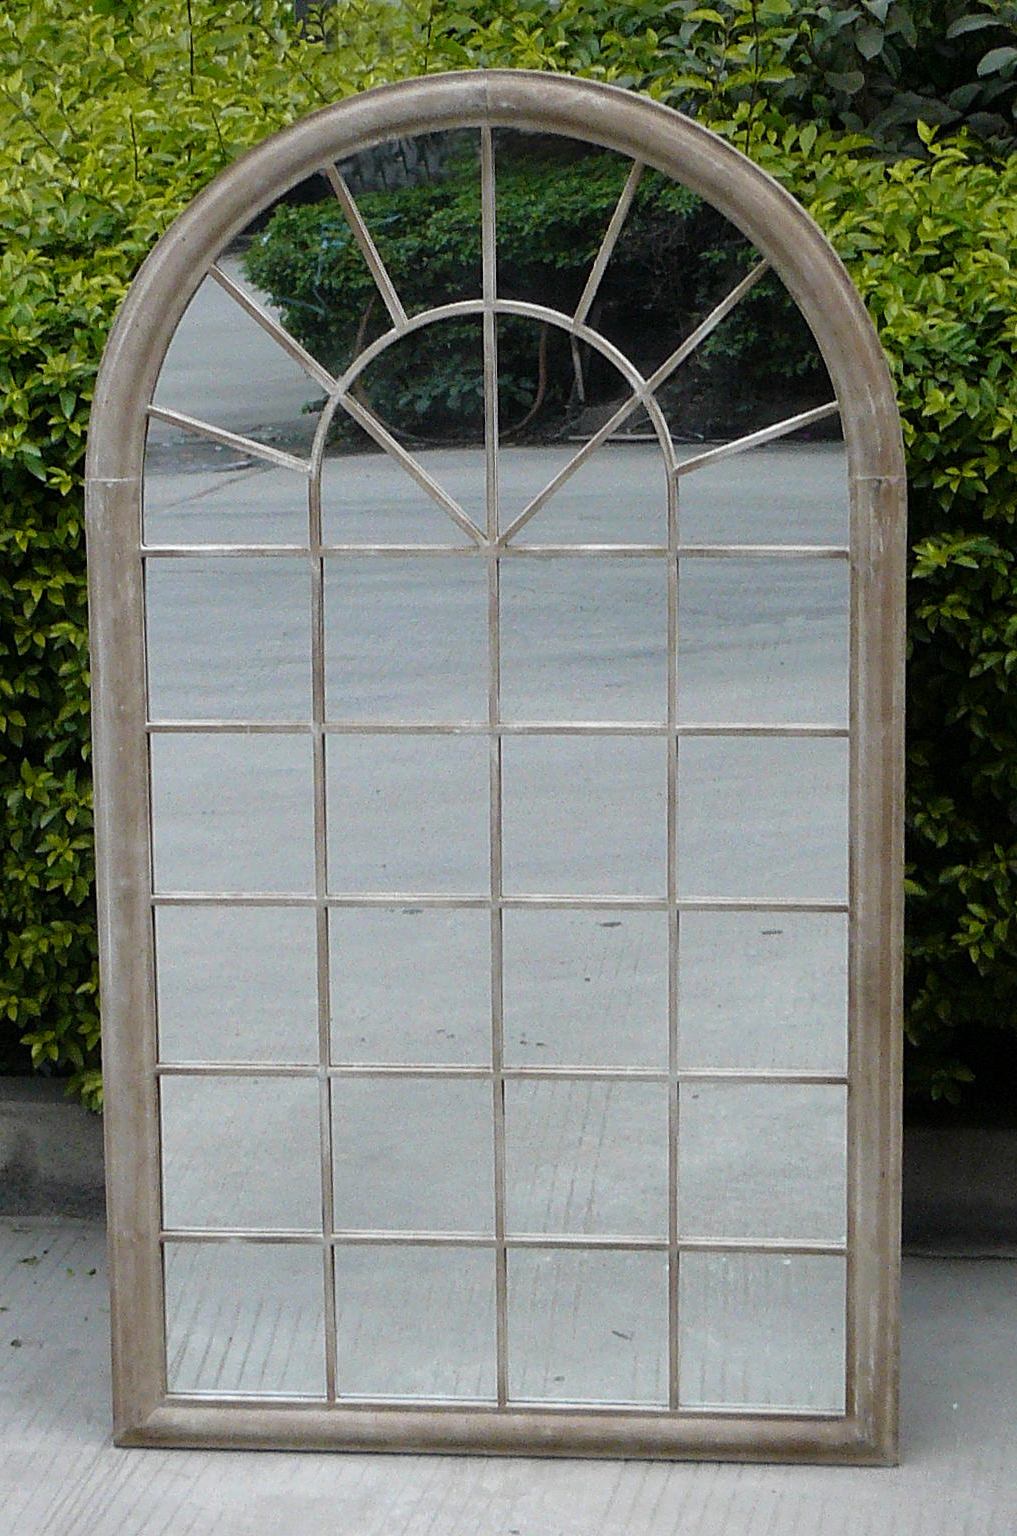 Outdoor Garden Wall Mirrors Within Preferred New Outdoor Garden Wall Mirrors Large Plaques Art Ideas (View 12 of 20)